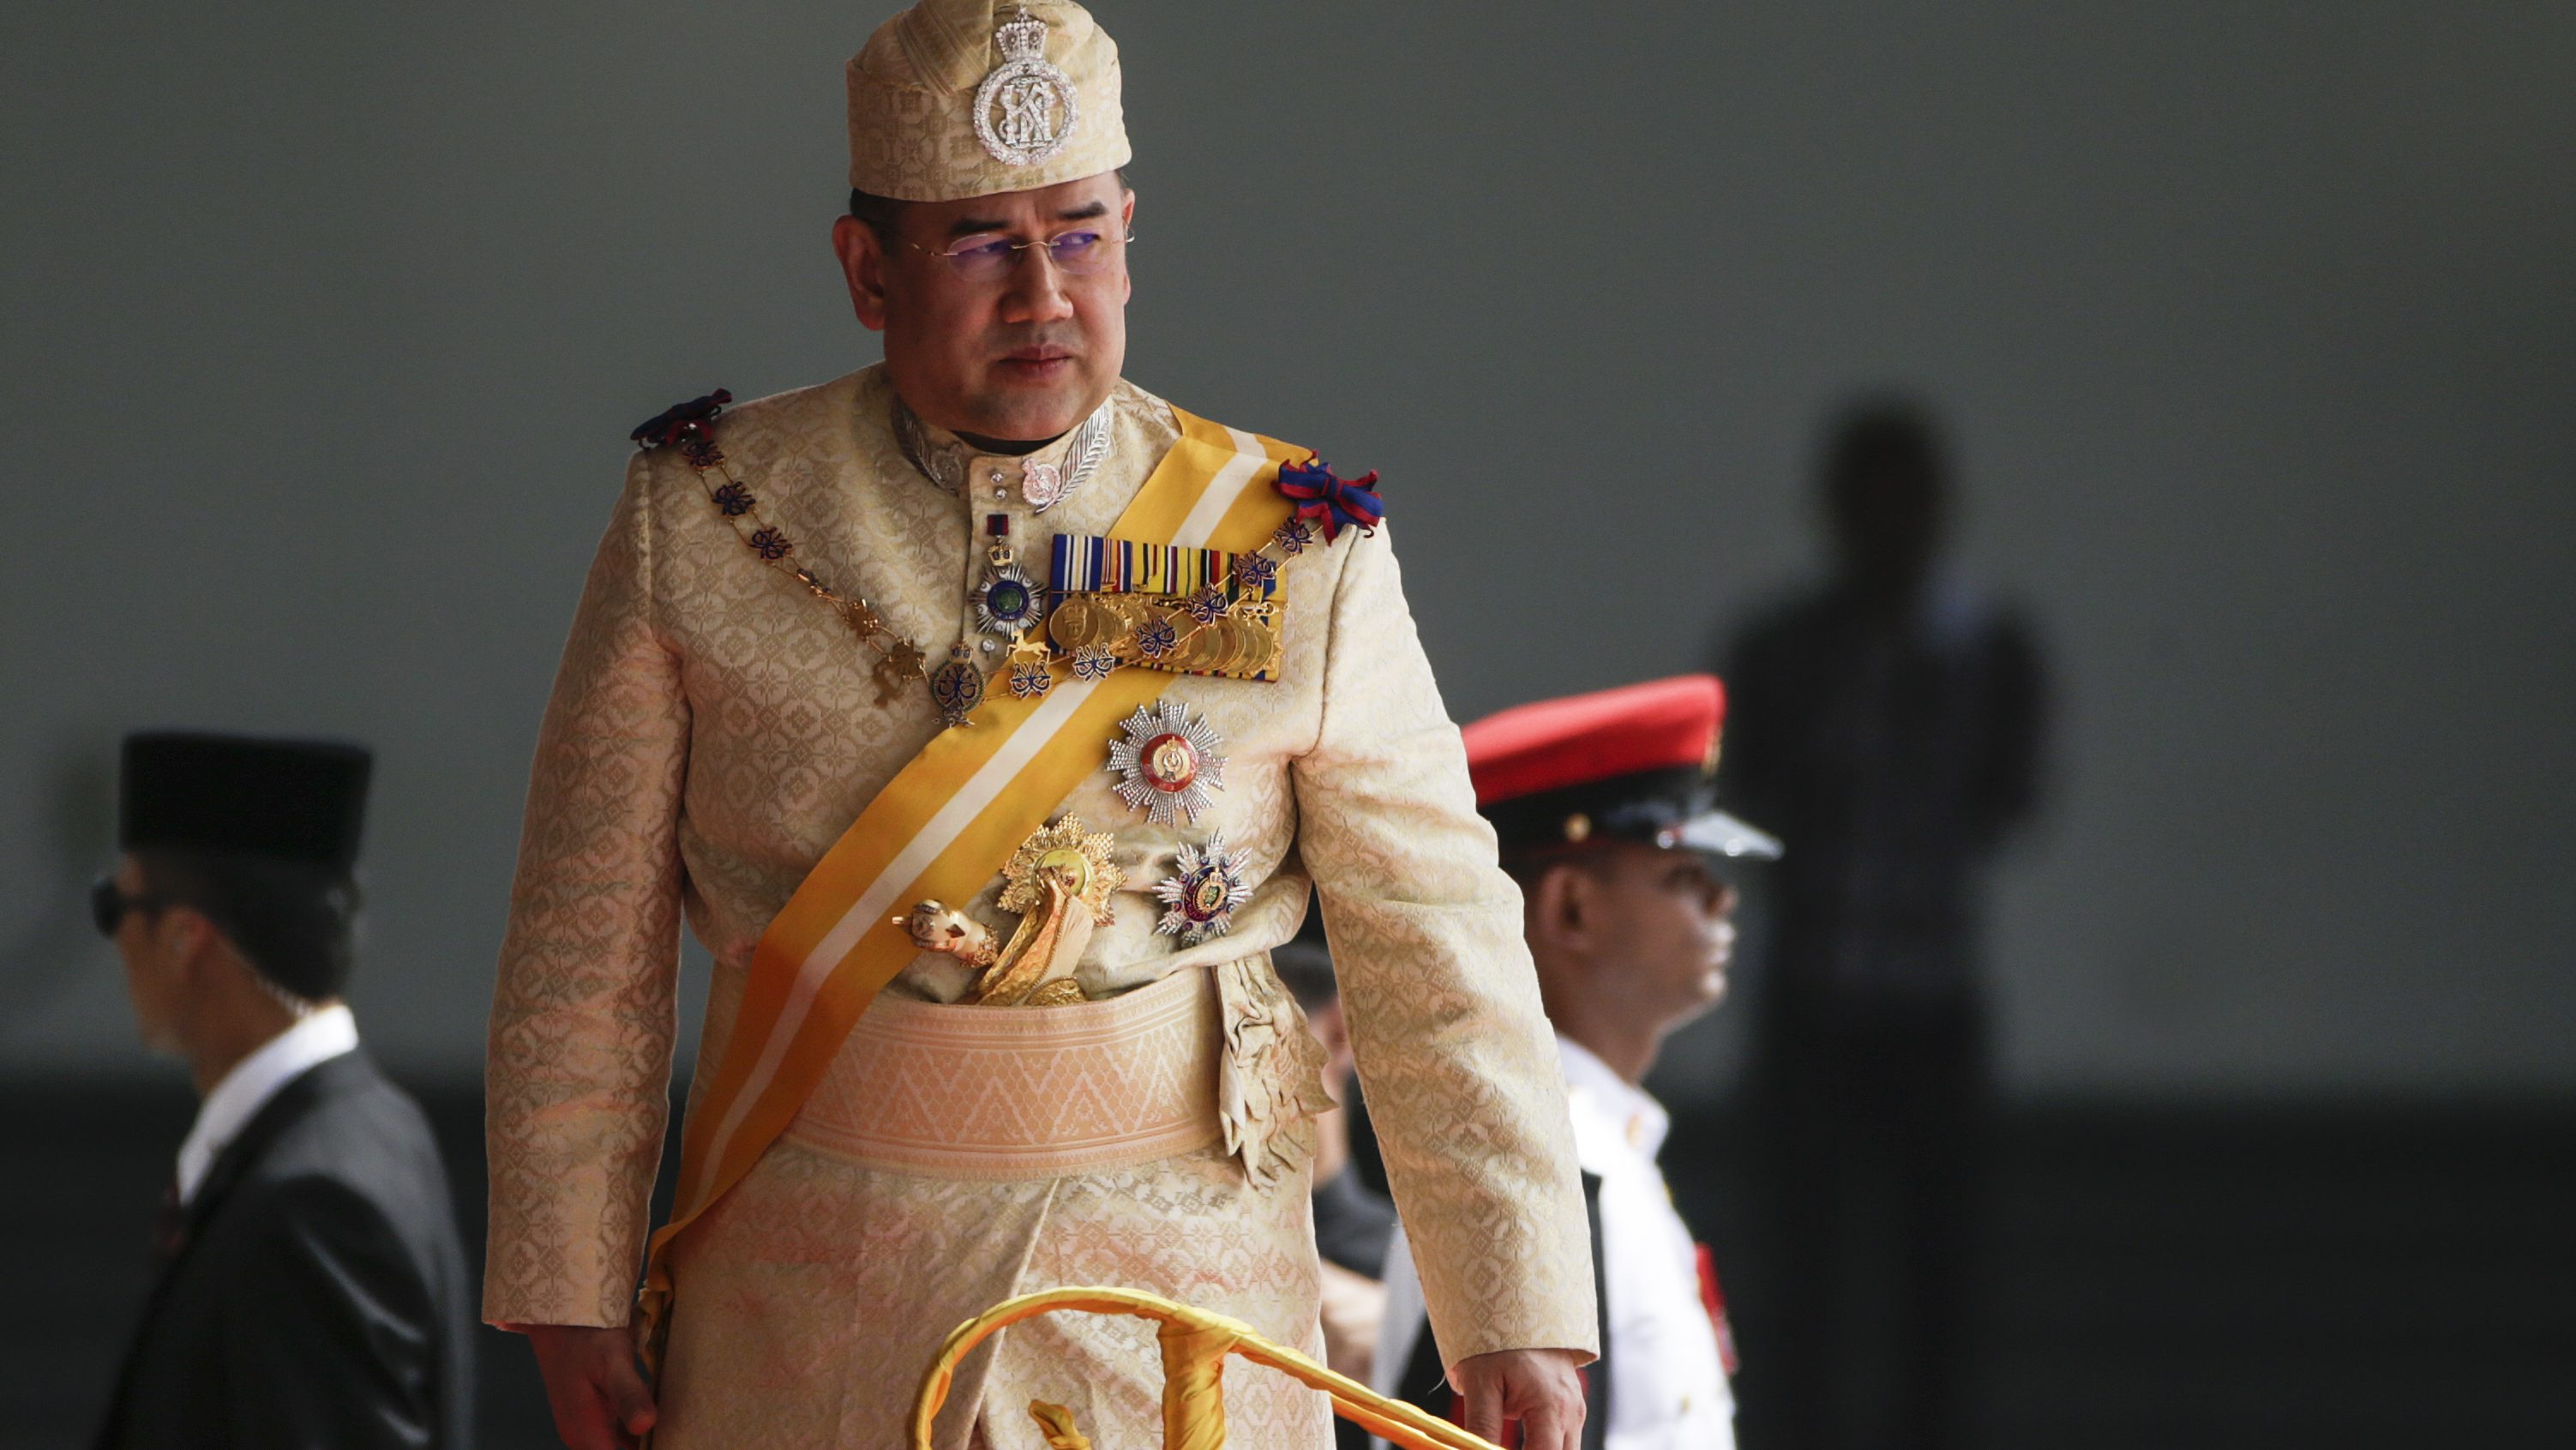 Malaysia's new King, Sultan Muhammad V (L) looks on during the official welcoming ceremony at Parliament Square, in Kuala Lumpur, Malaysia, 13 December 2016. Sultan Muhammad V is the 15th Malaysian King. The appointment is rotated among nine of Malaysia's 13 states that have hereditary royal rulers. EPA/FAZRY ISMAIL